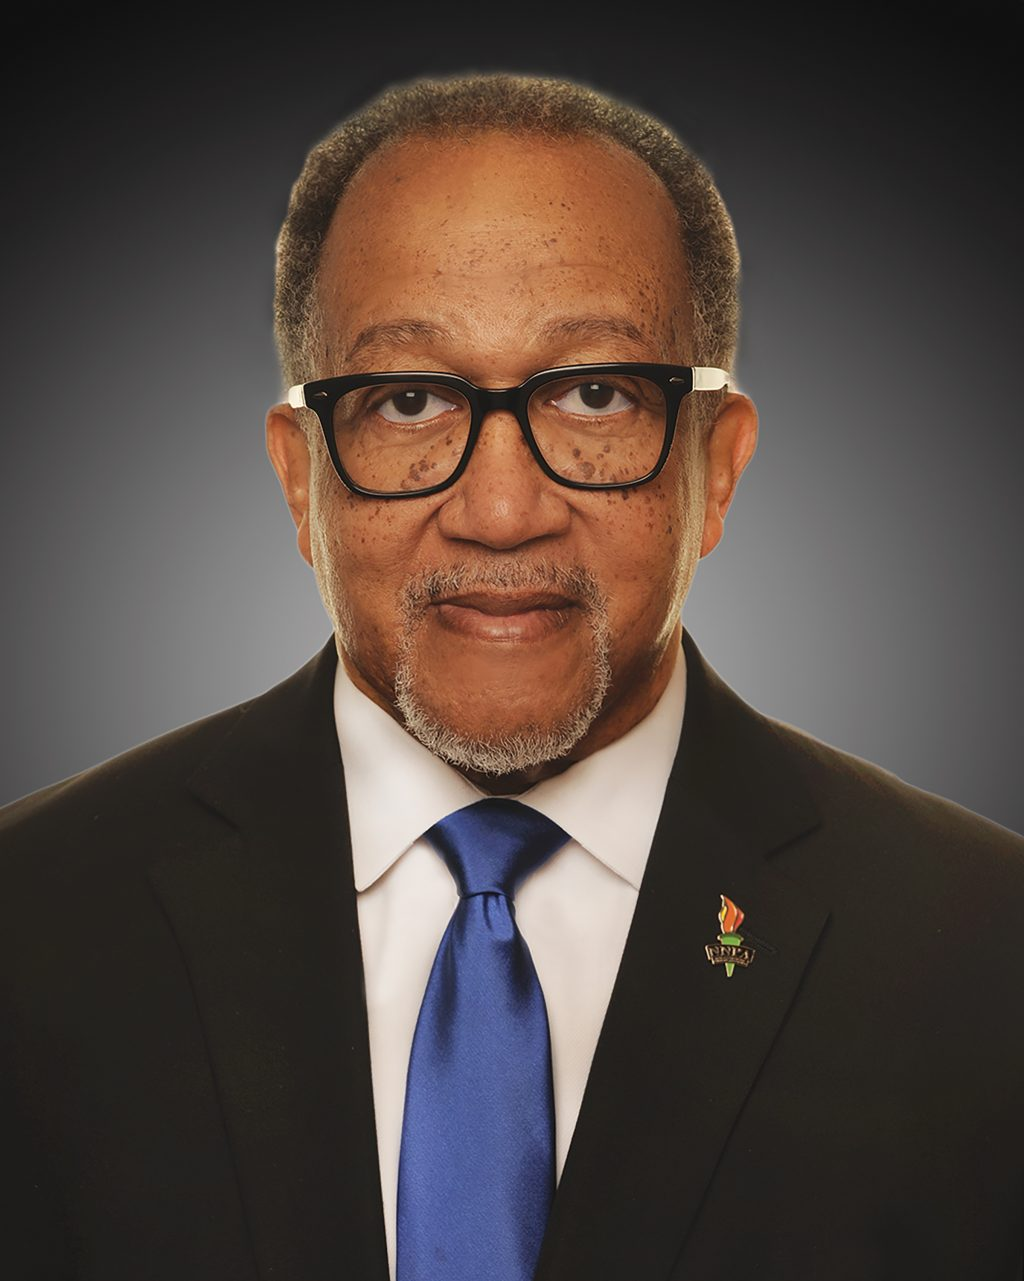 PRESS ROOM: NNPA President Moderates Forum on Systemic Racism